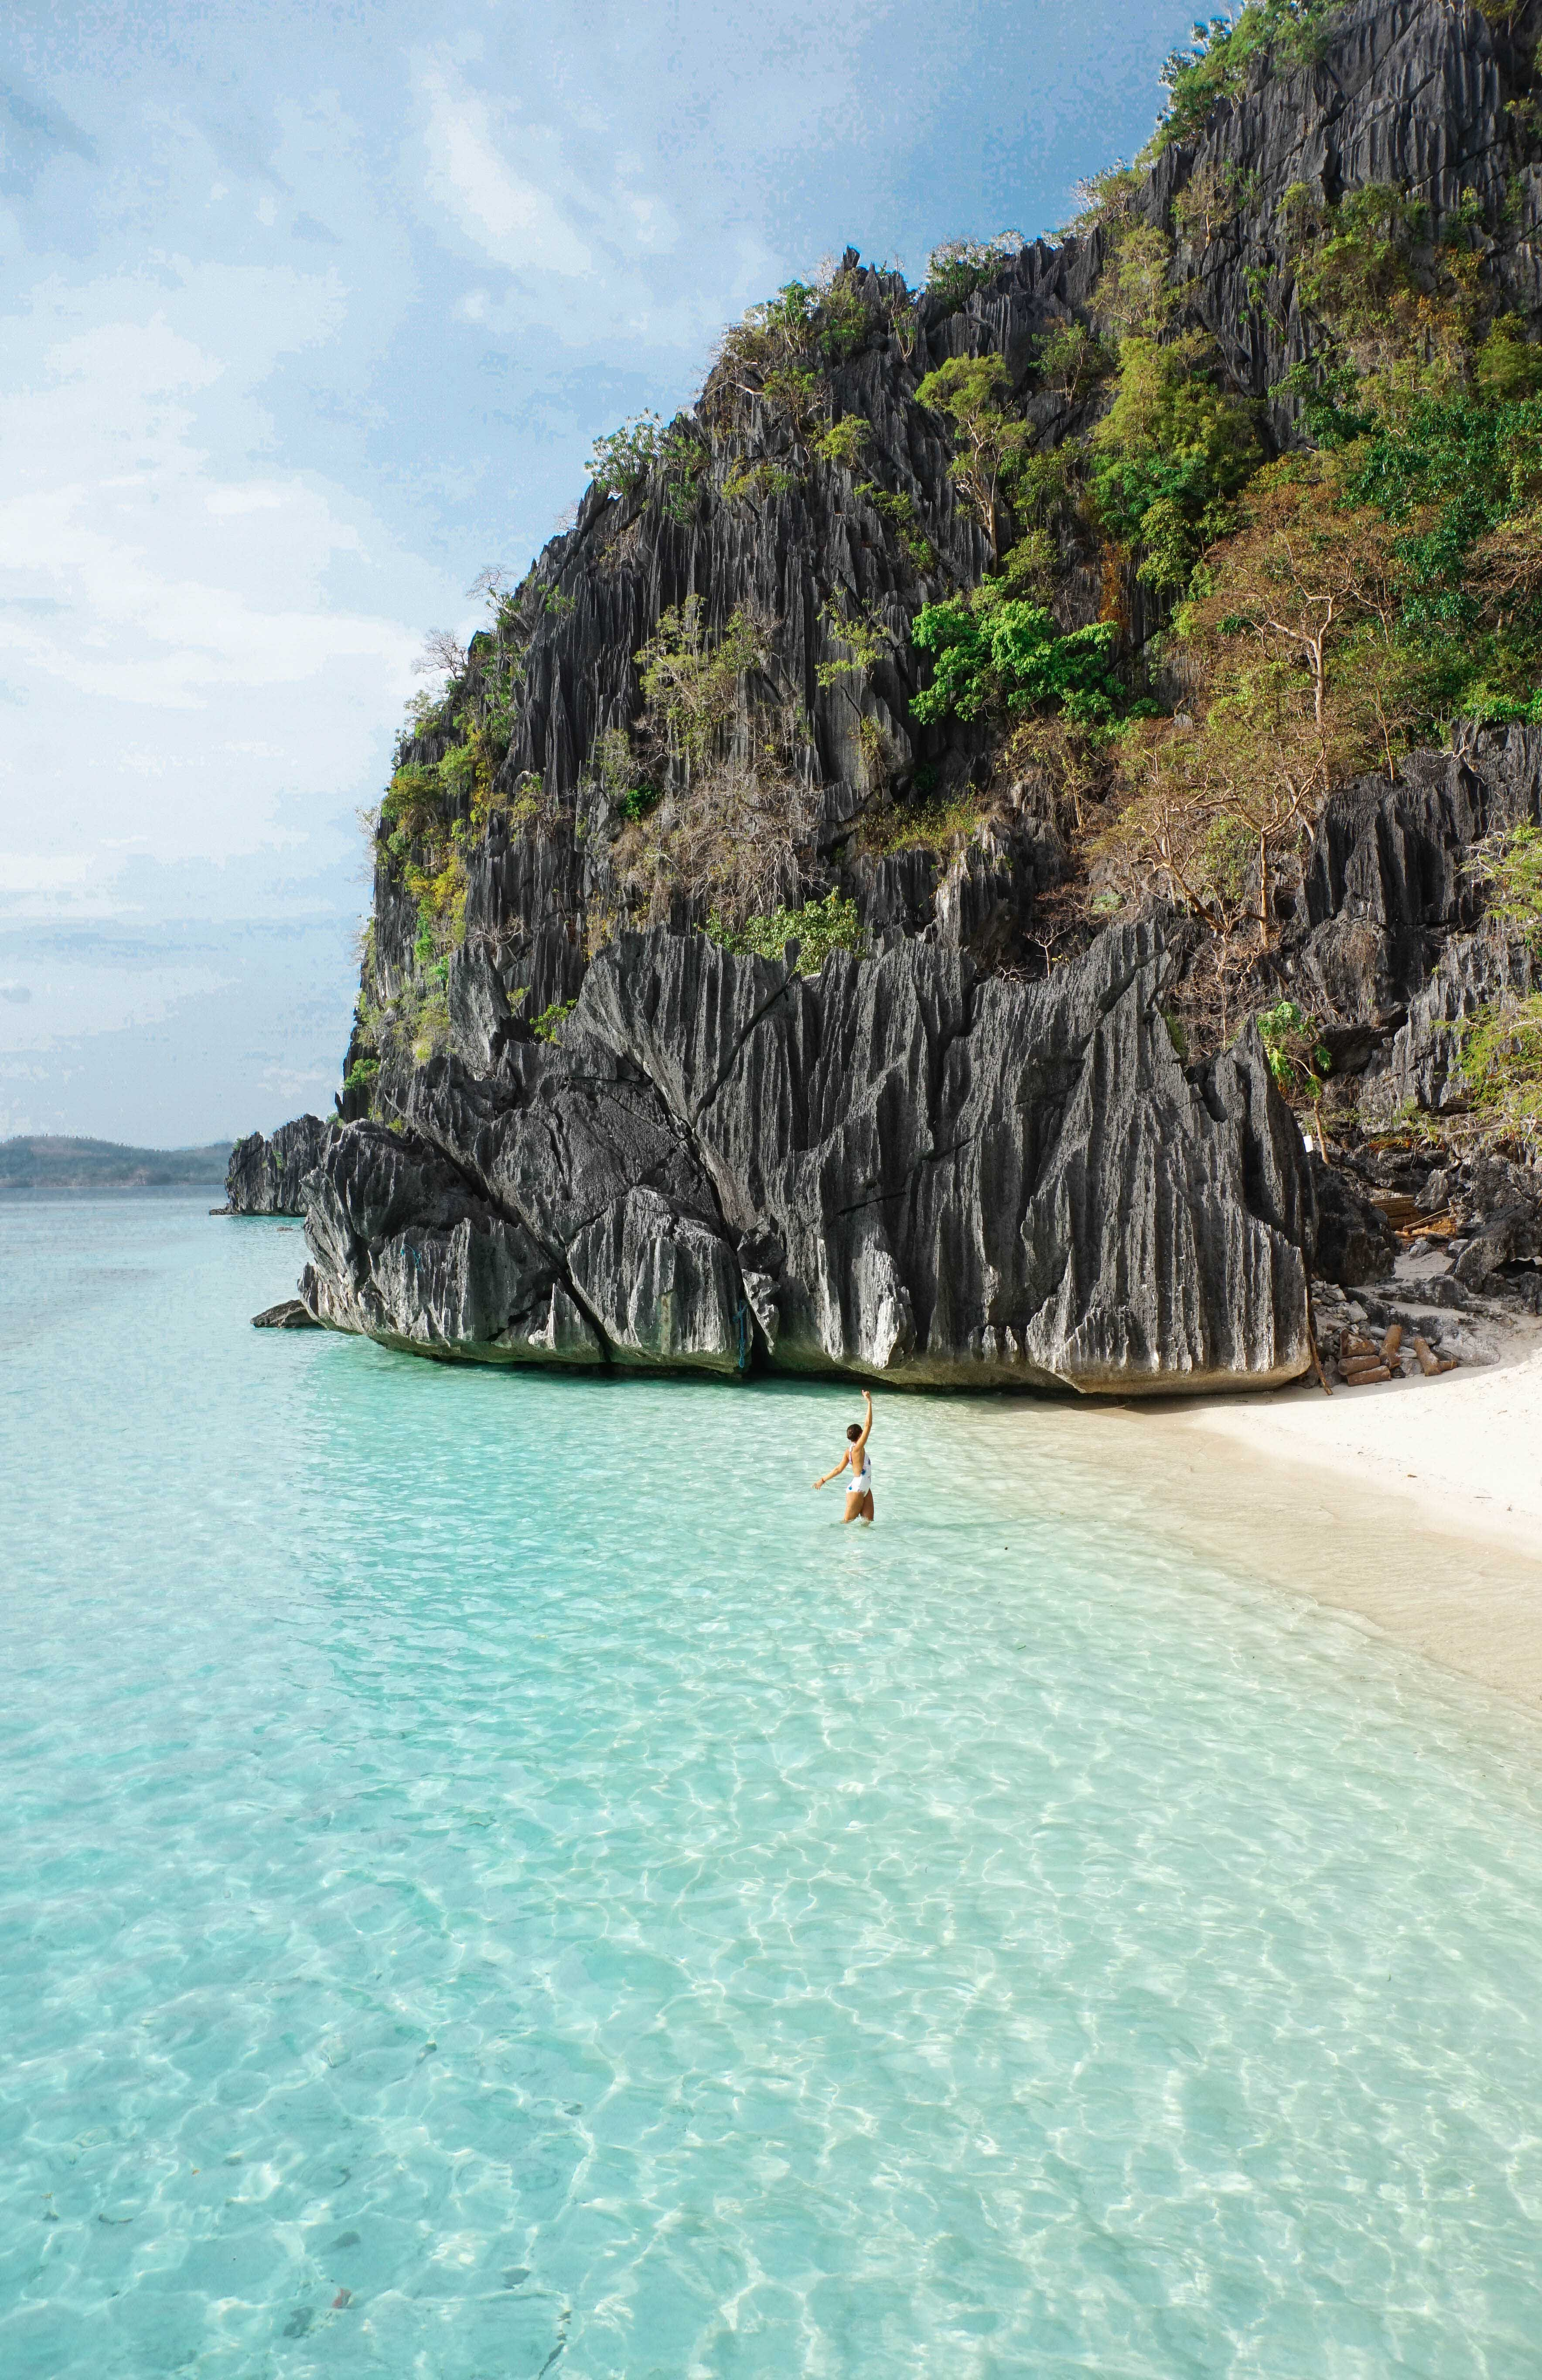 Lulu in Phillippines with crystal clear water